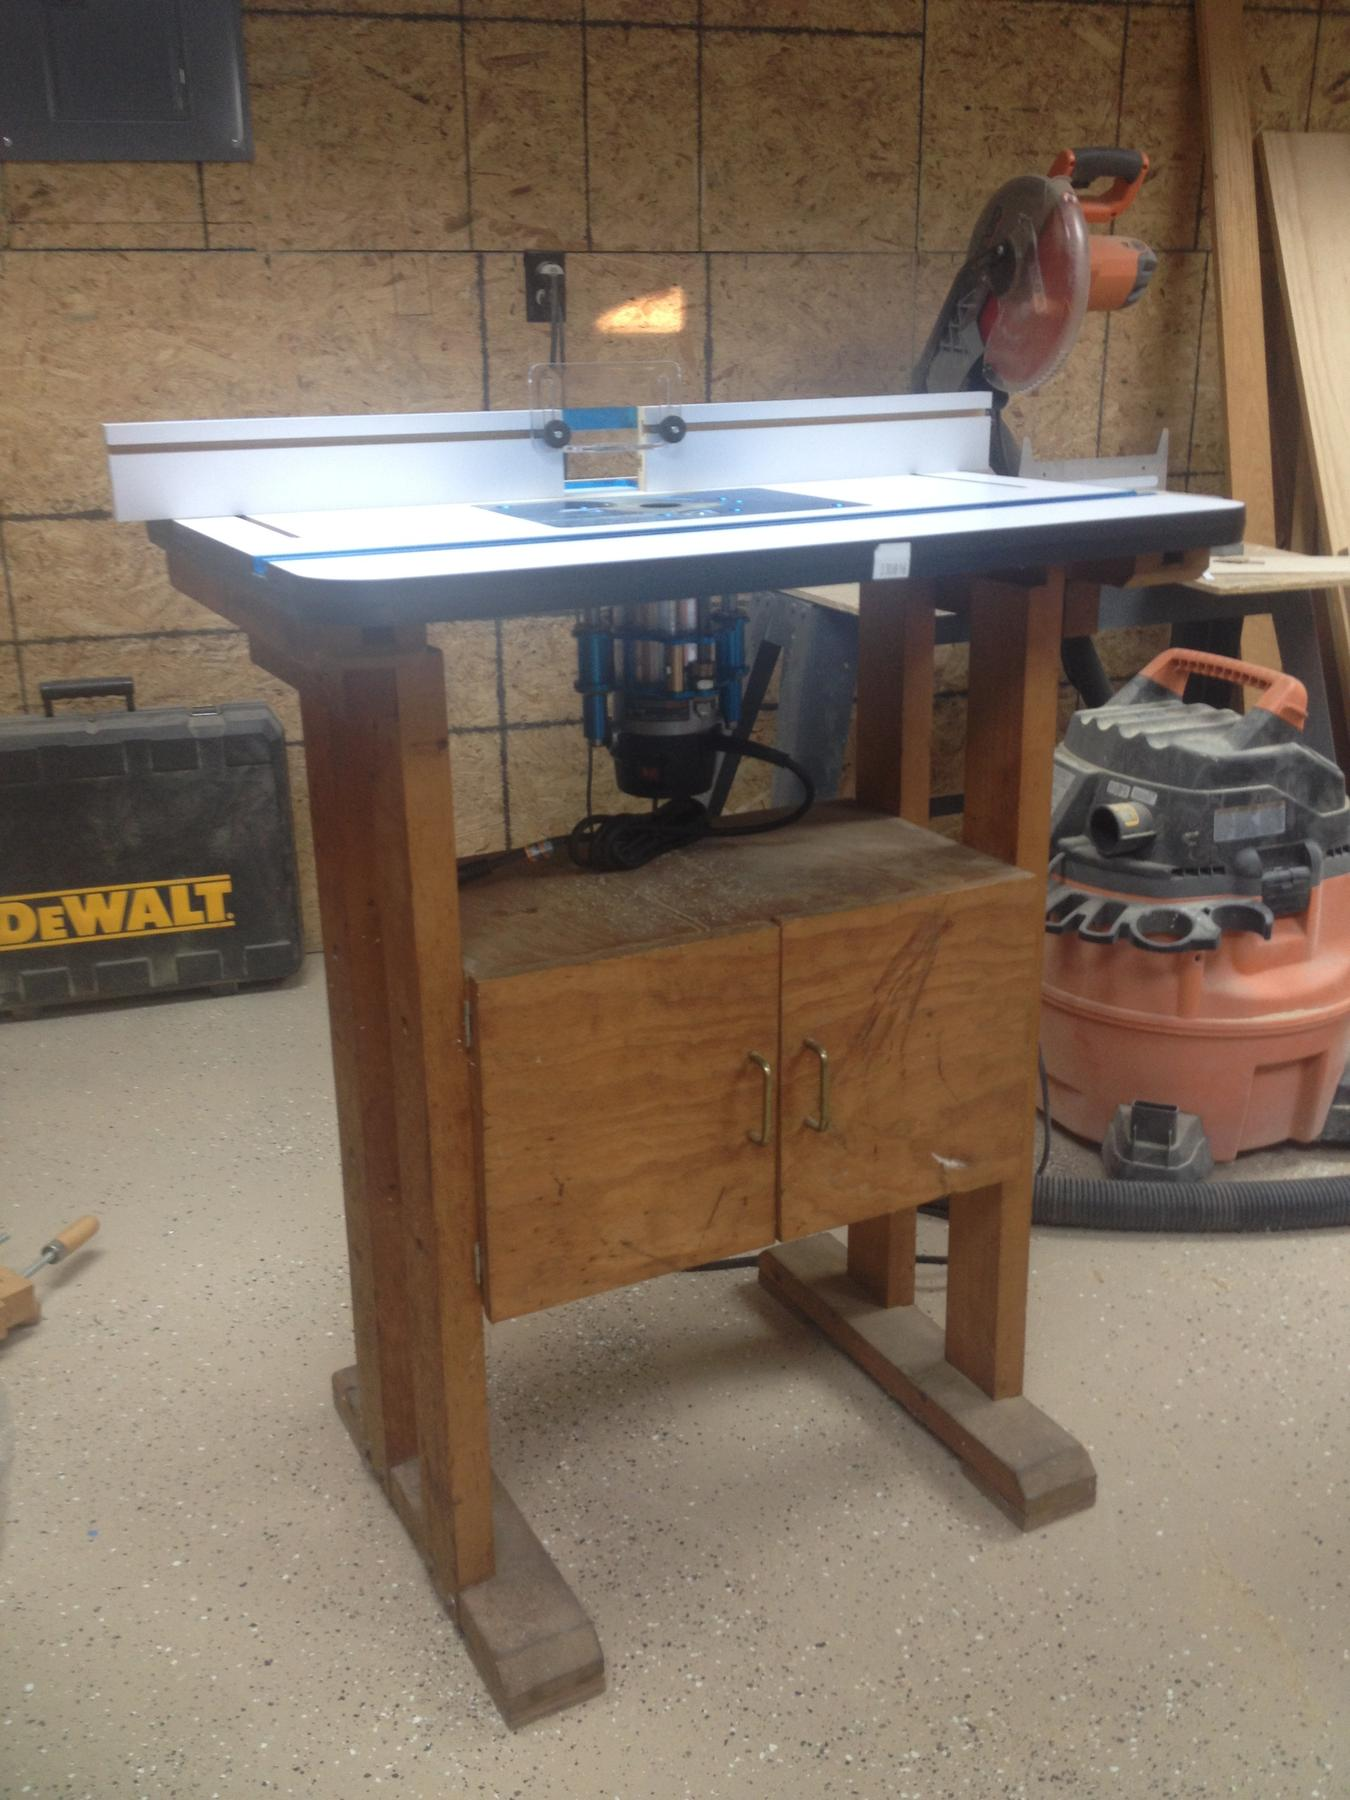 Rockler high pressure laminate router table fence router and fx my old table need an update so here it iswill be keyboard keysfo Images